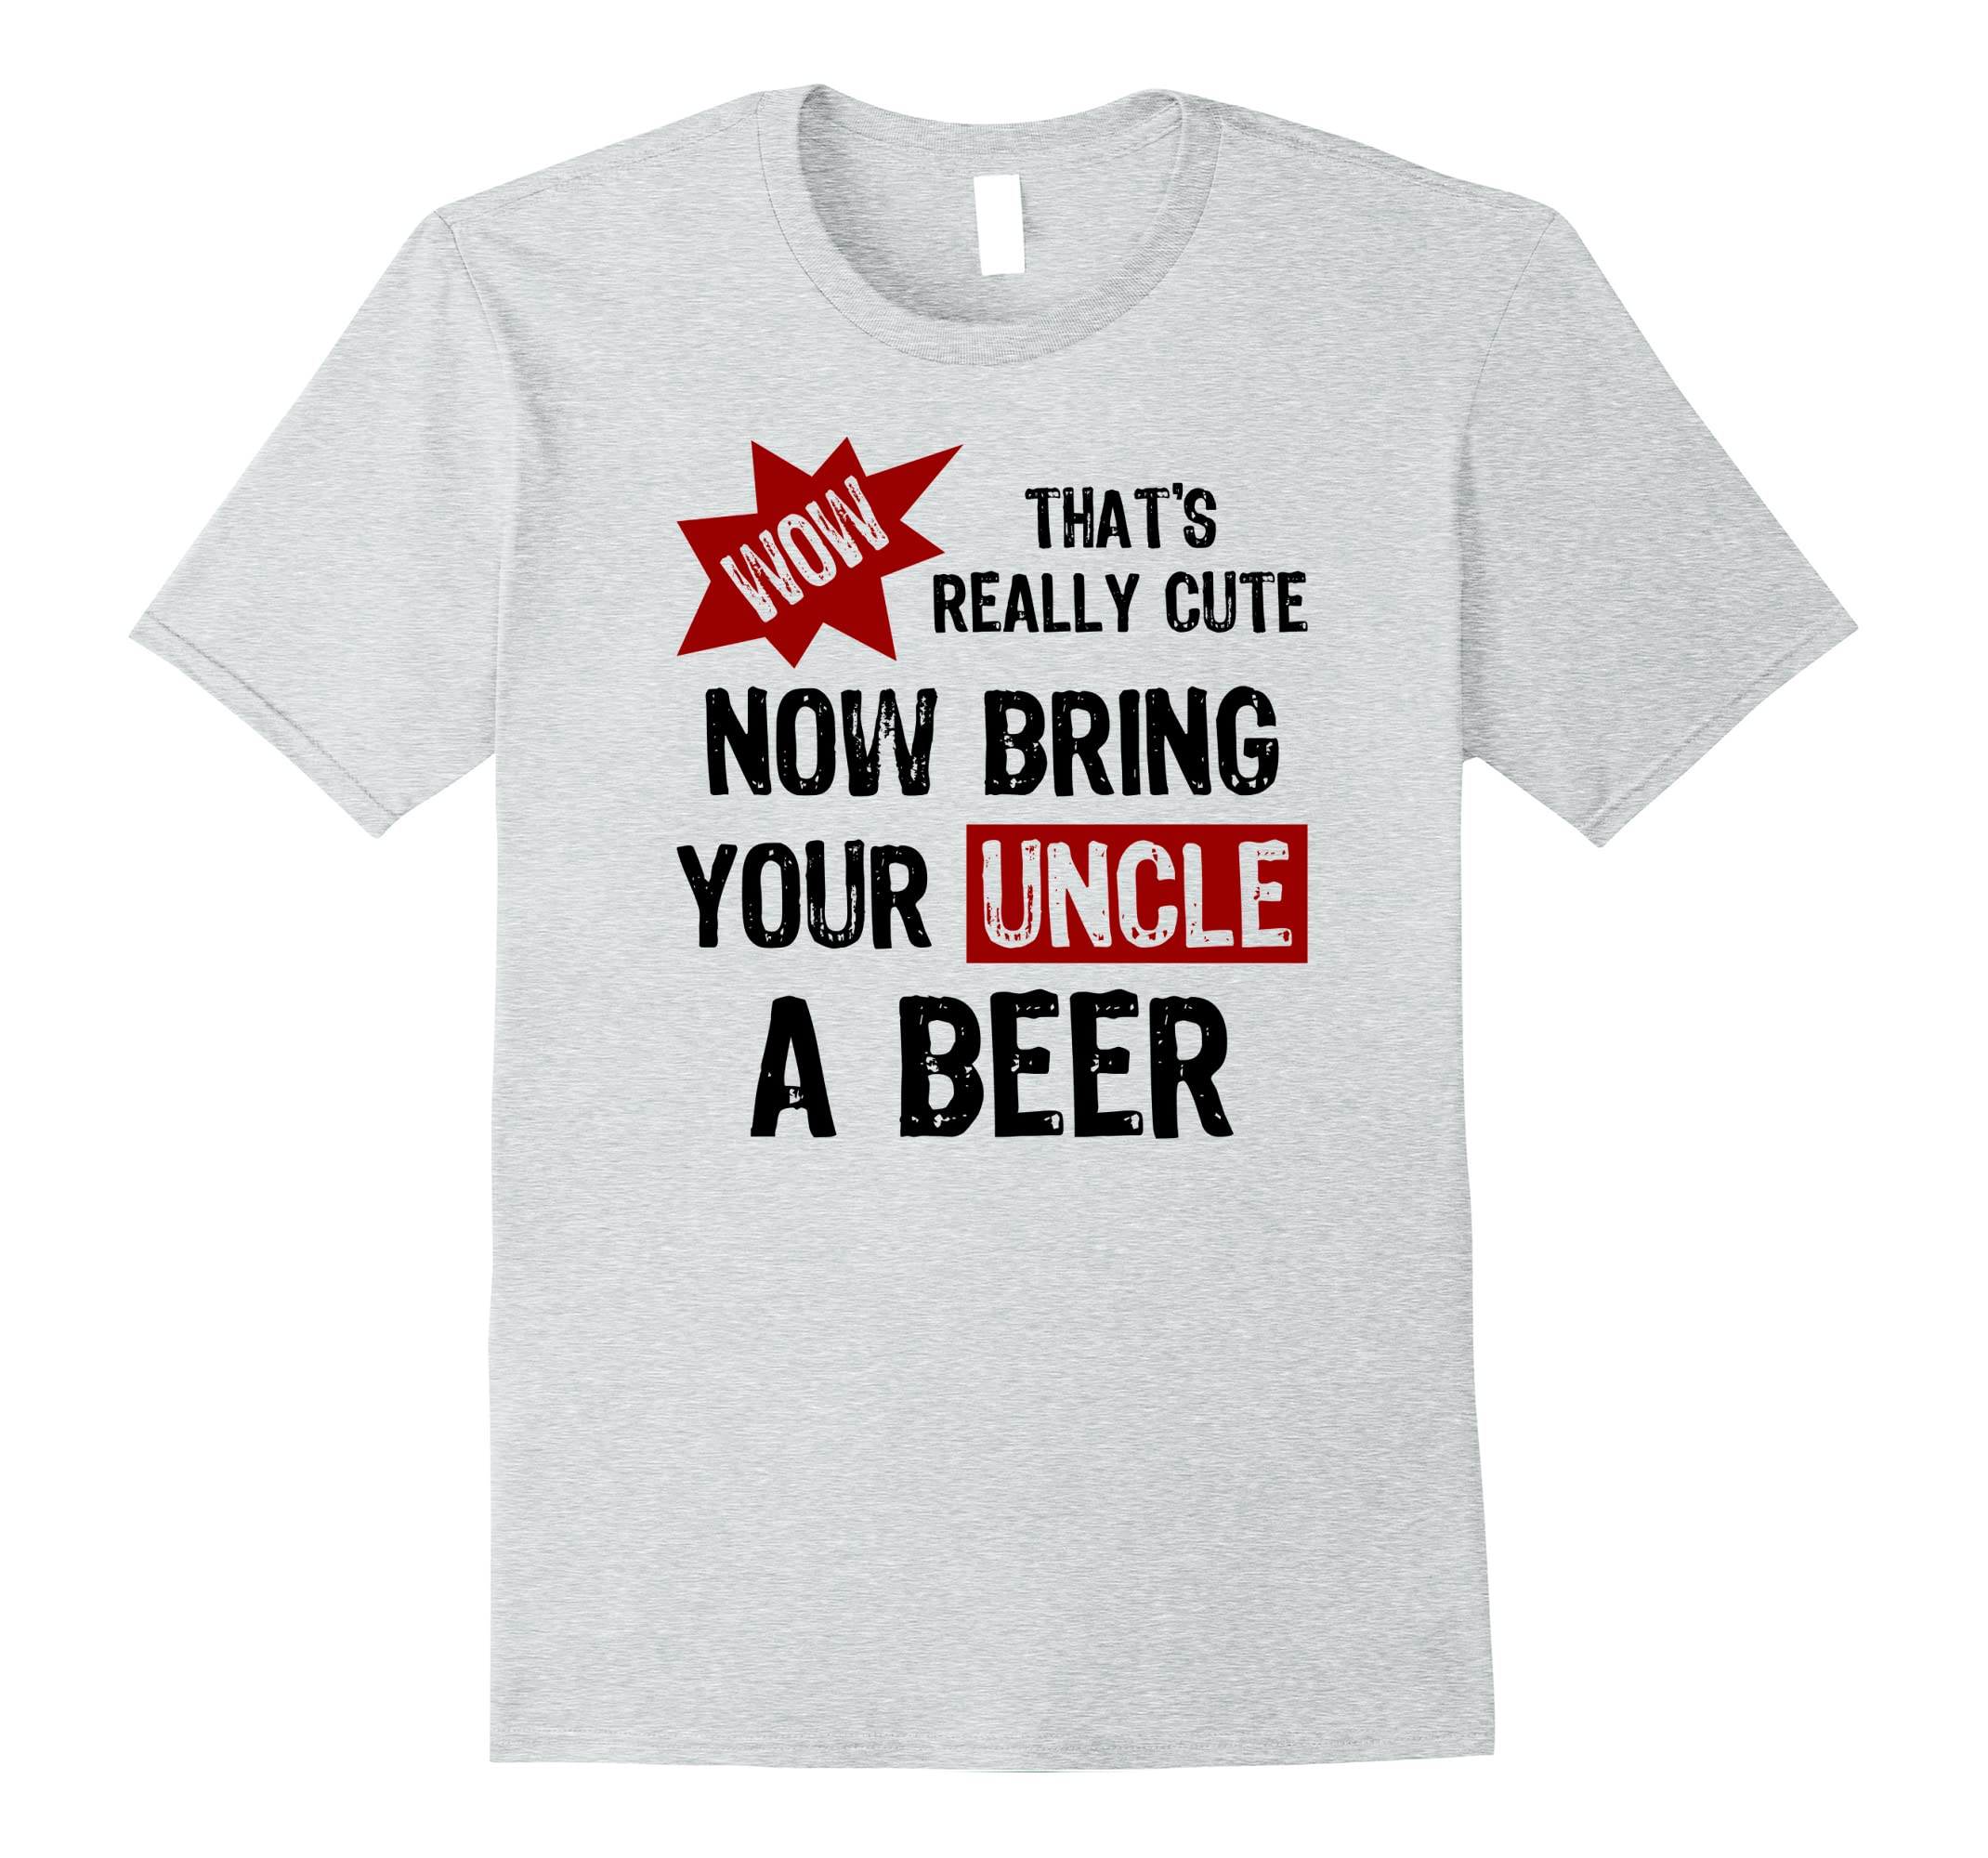 e2b0bc19db Mens Cute Now Bring Your Uncle A Beer Funny Uncles Shirt for Men-RT ...